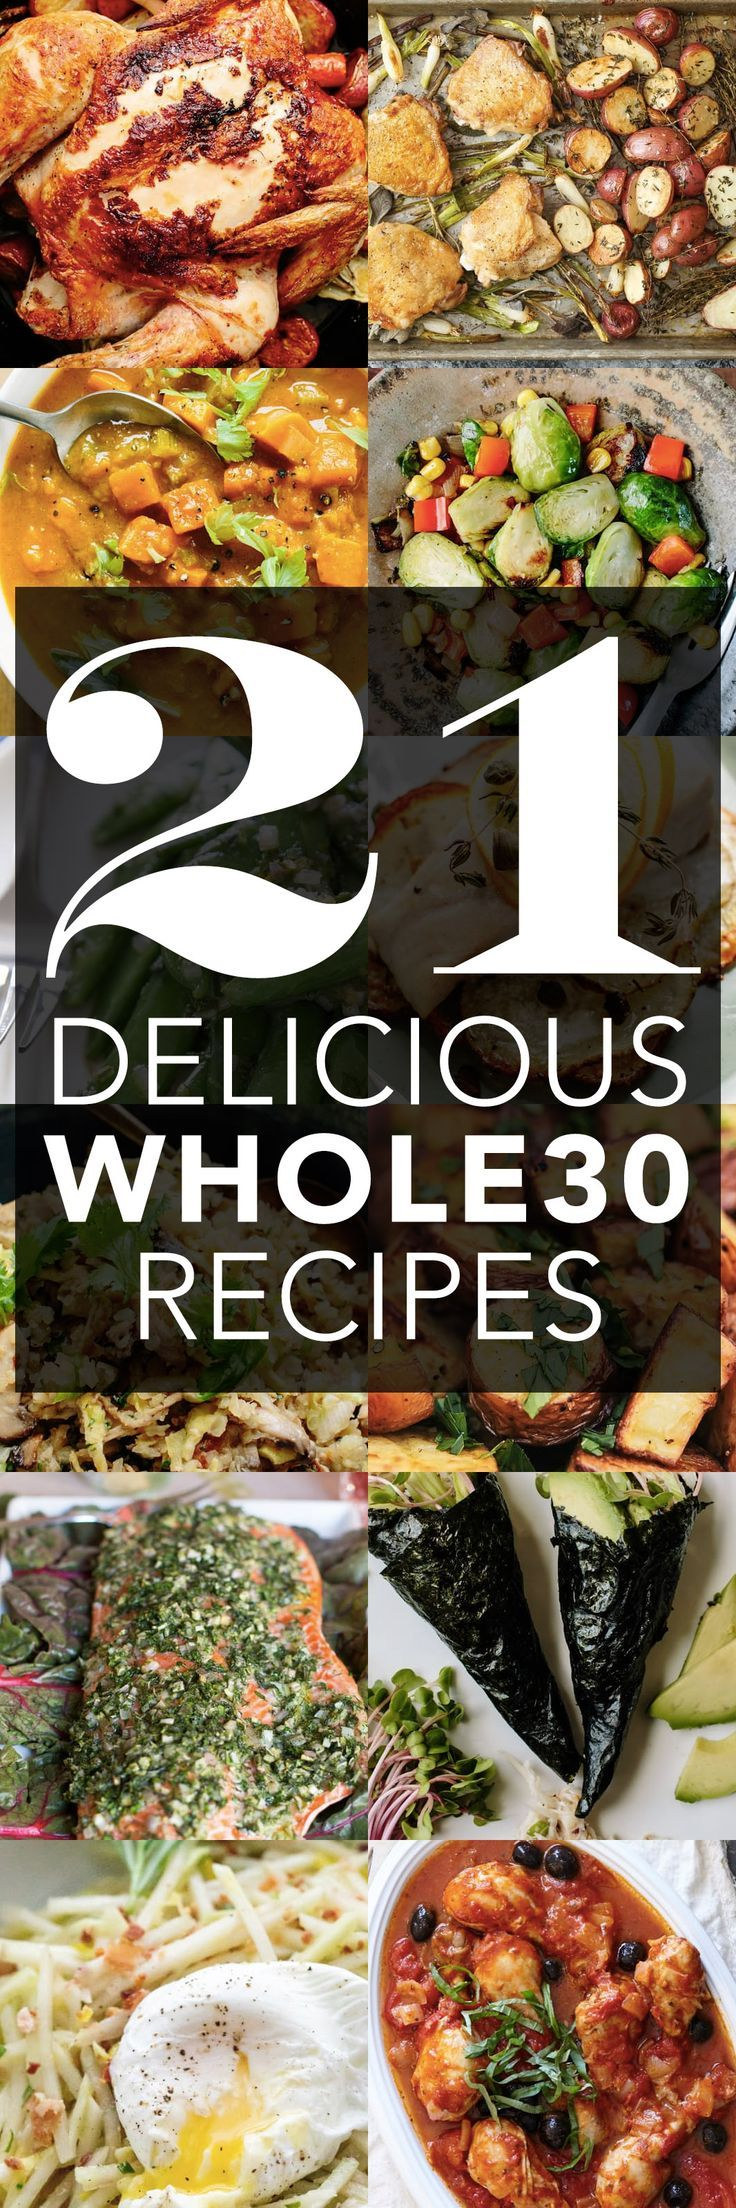 21 DELICIOUS Whole30 Approved Recipes and Ideas. You dont have to go hungry w